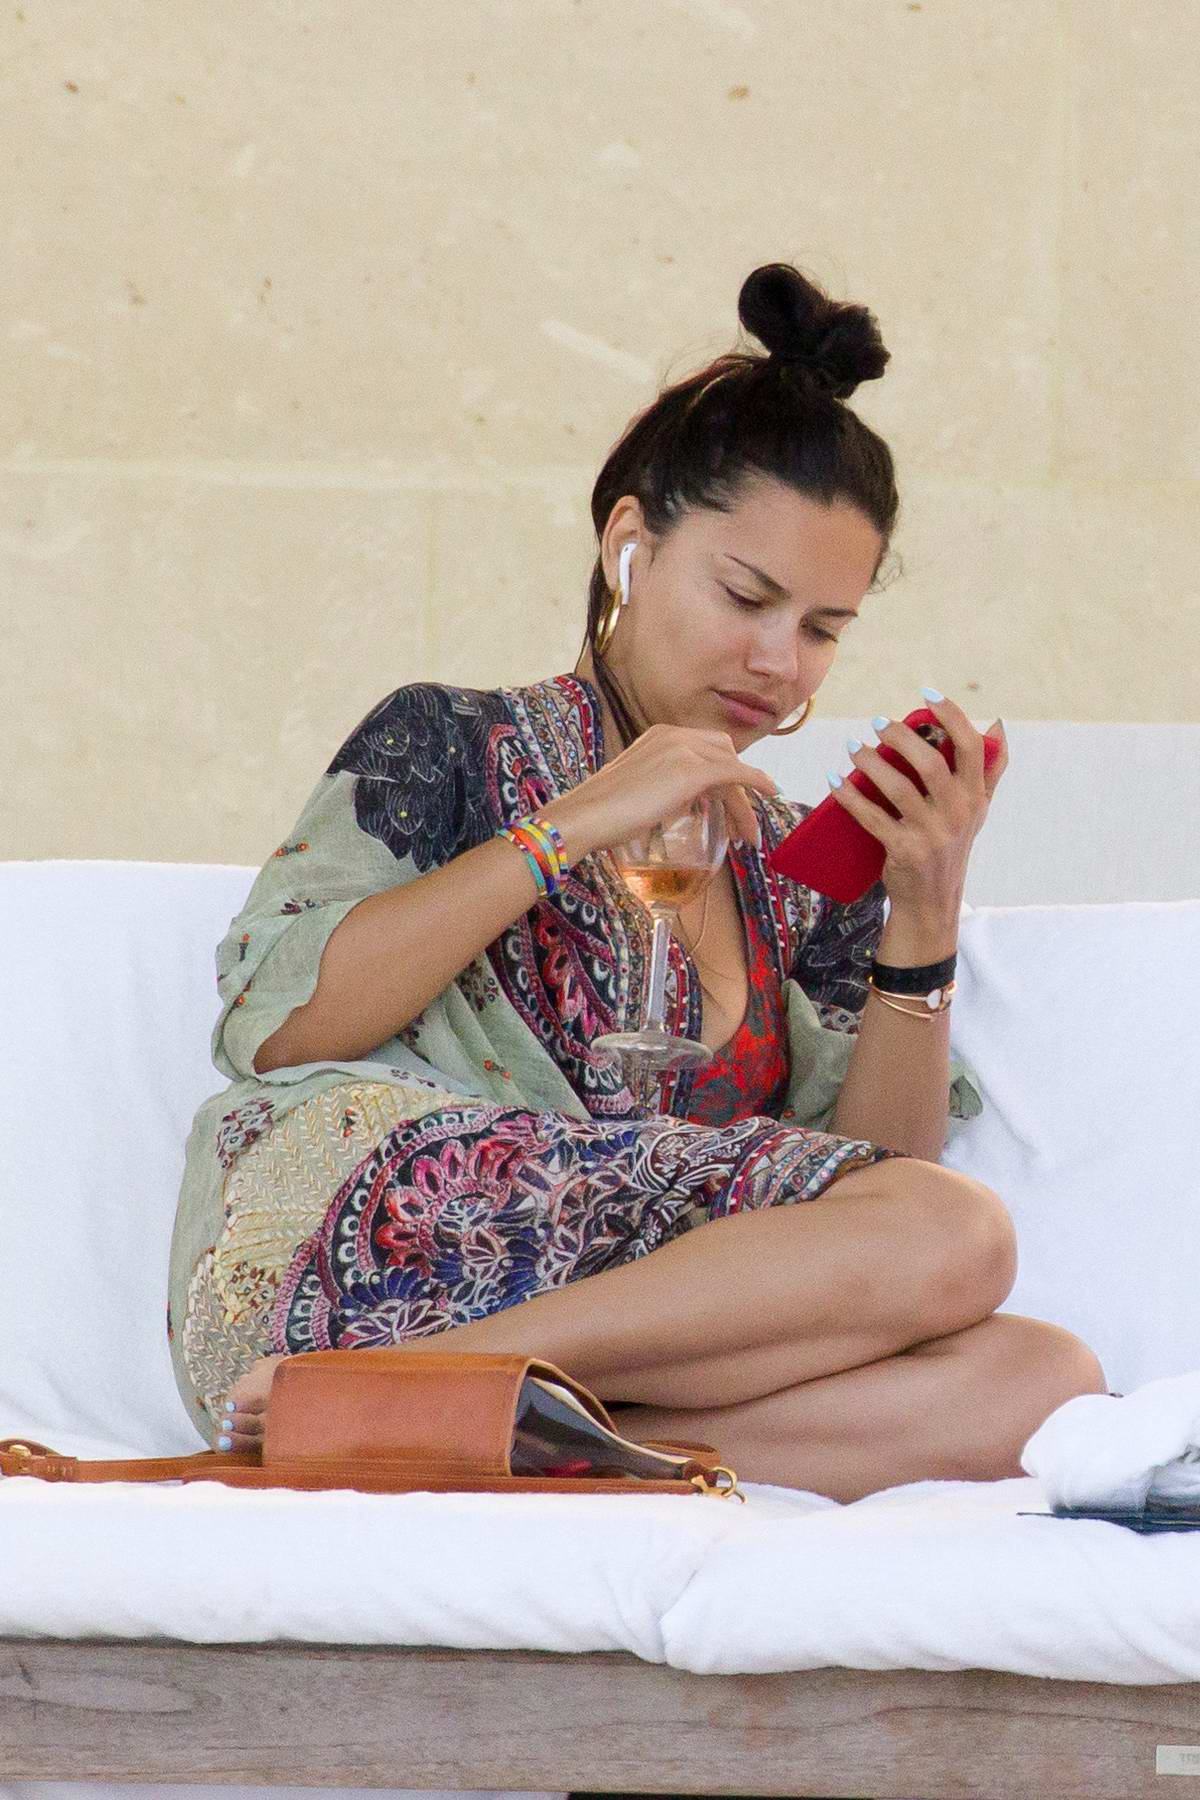 Adriana Lima spotted in a bikini as she lounges by the pool with her kids and friends in Miami, Florida